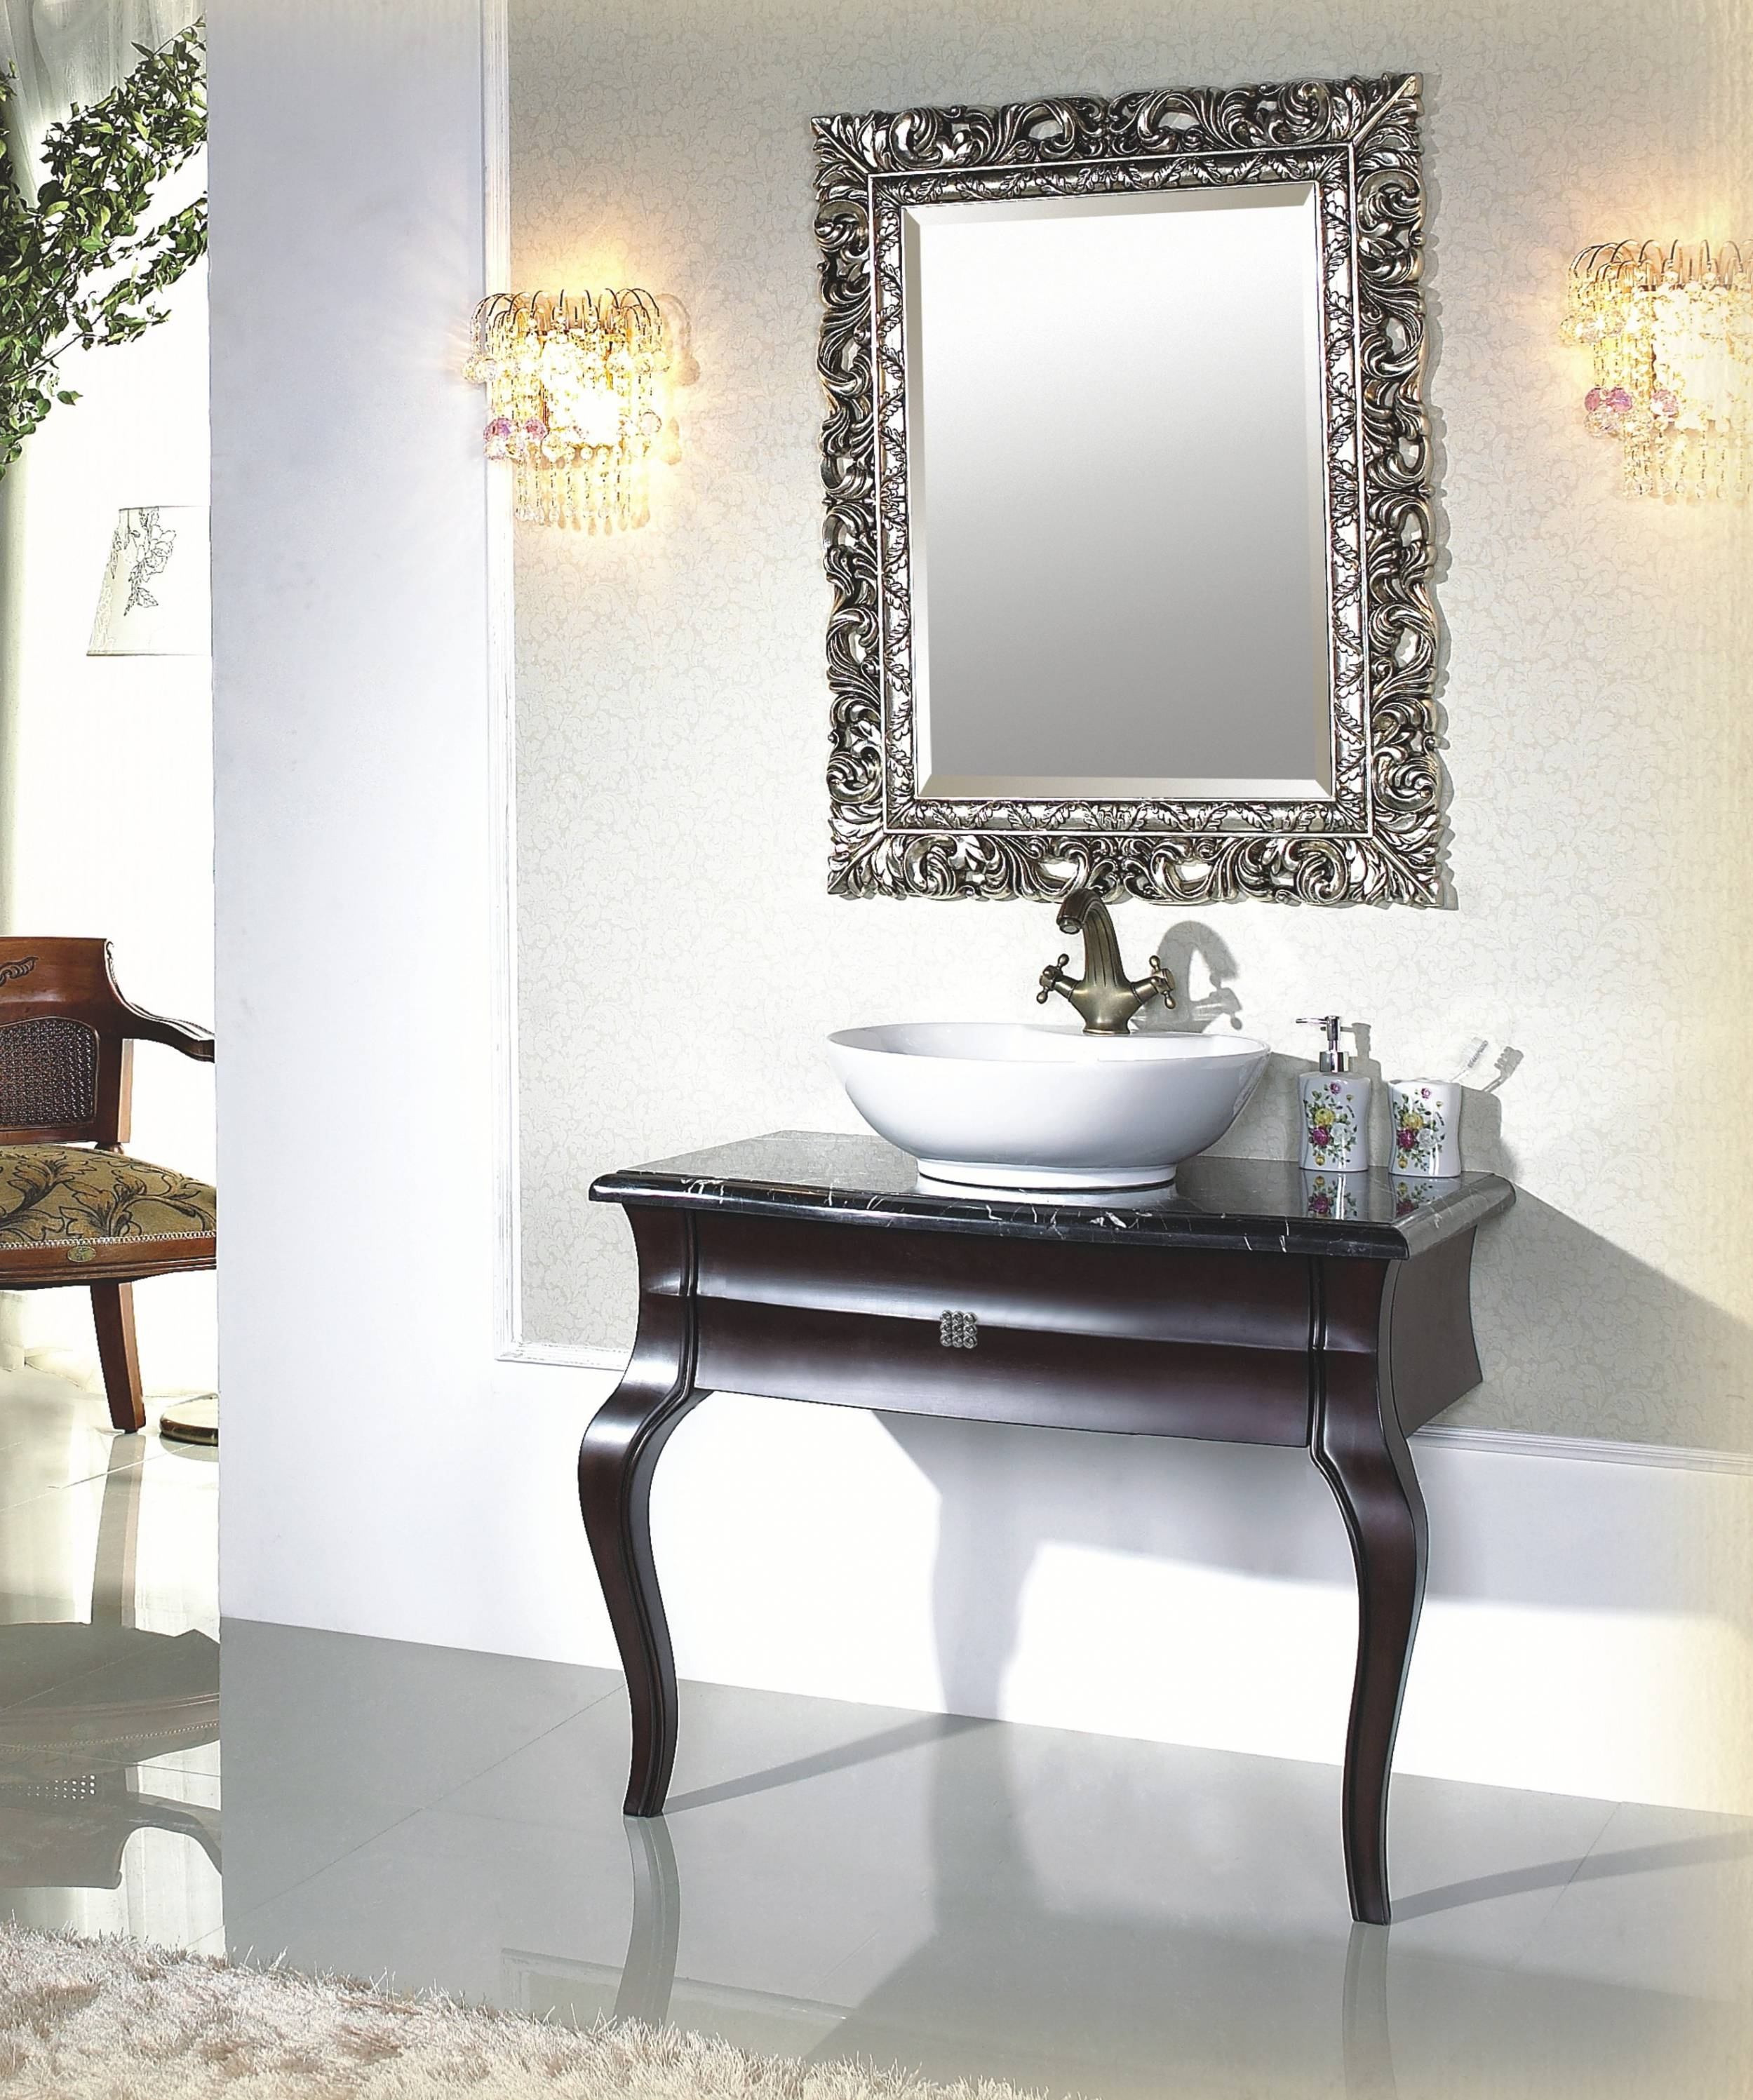 Fashionable Antique Bathroom Mirror 14 Best Vintage Light And pertaining to Vintage Style Bathroom Mirrors (Image 13 of 25)